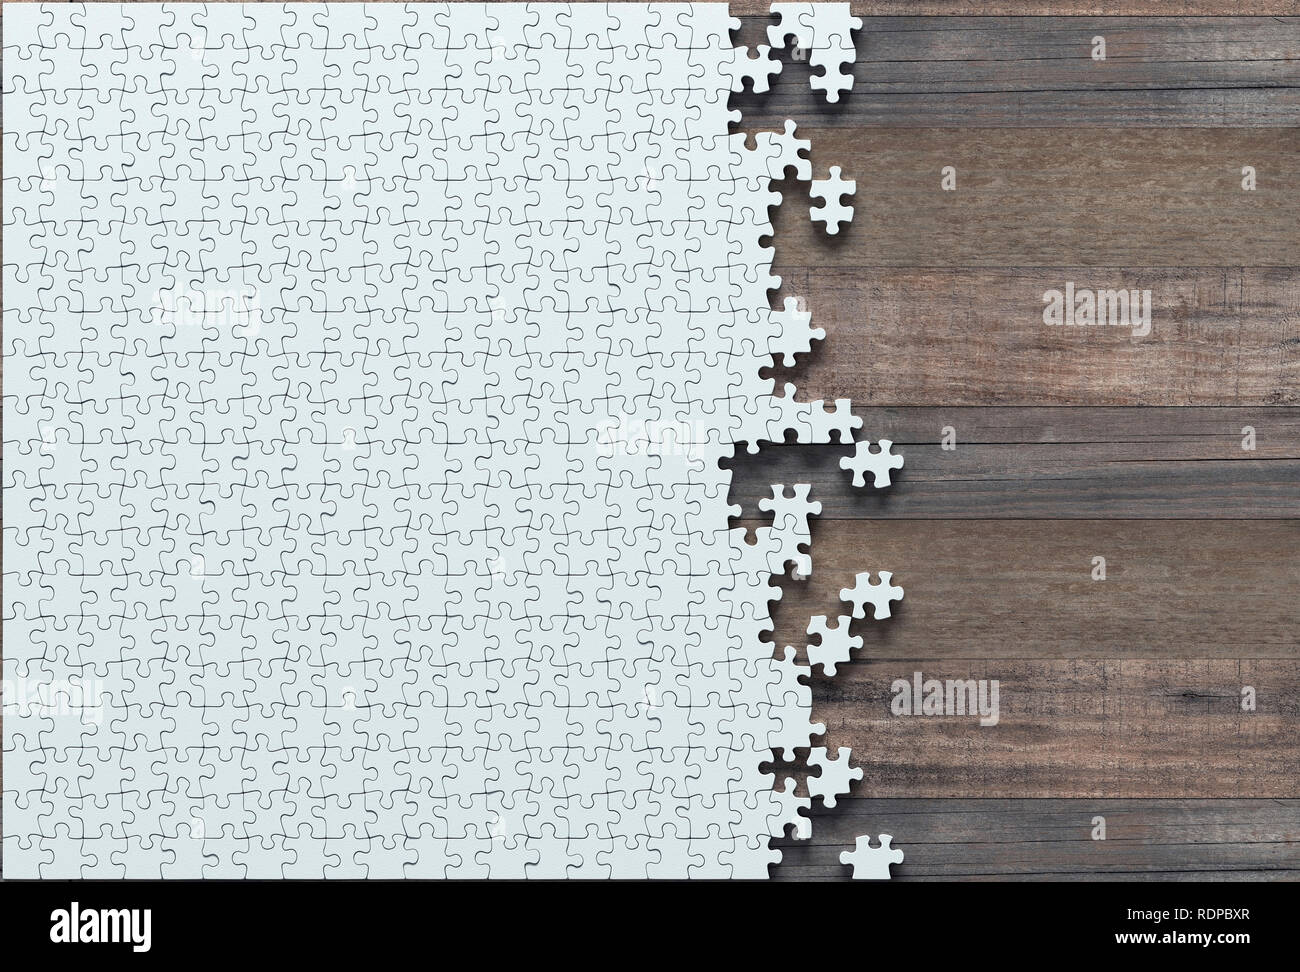 Incomplete jigsaw puzzle pieces, illustration. - Stock Image